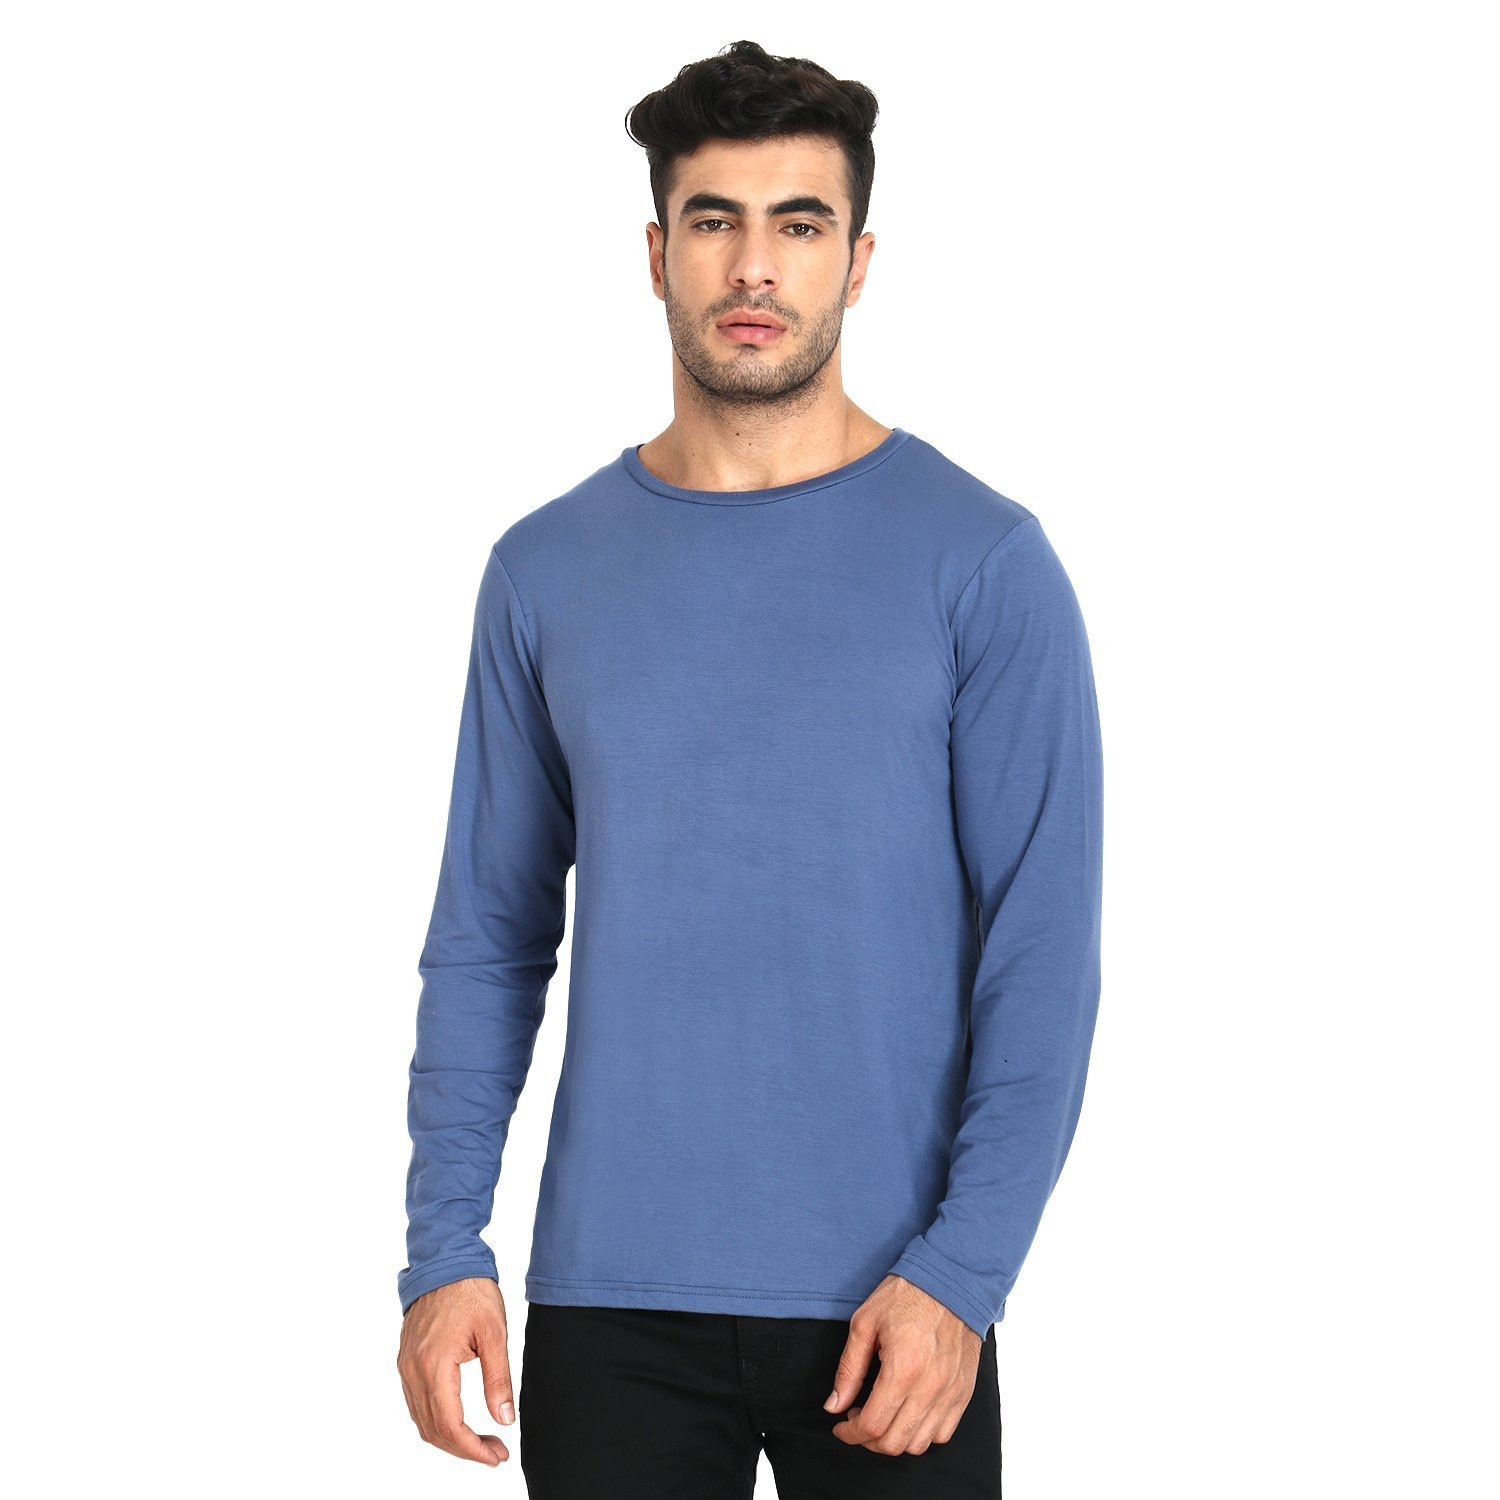 Men's Organic Bamboo Full Sleeve Tee Blue